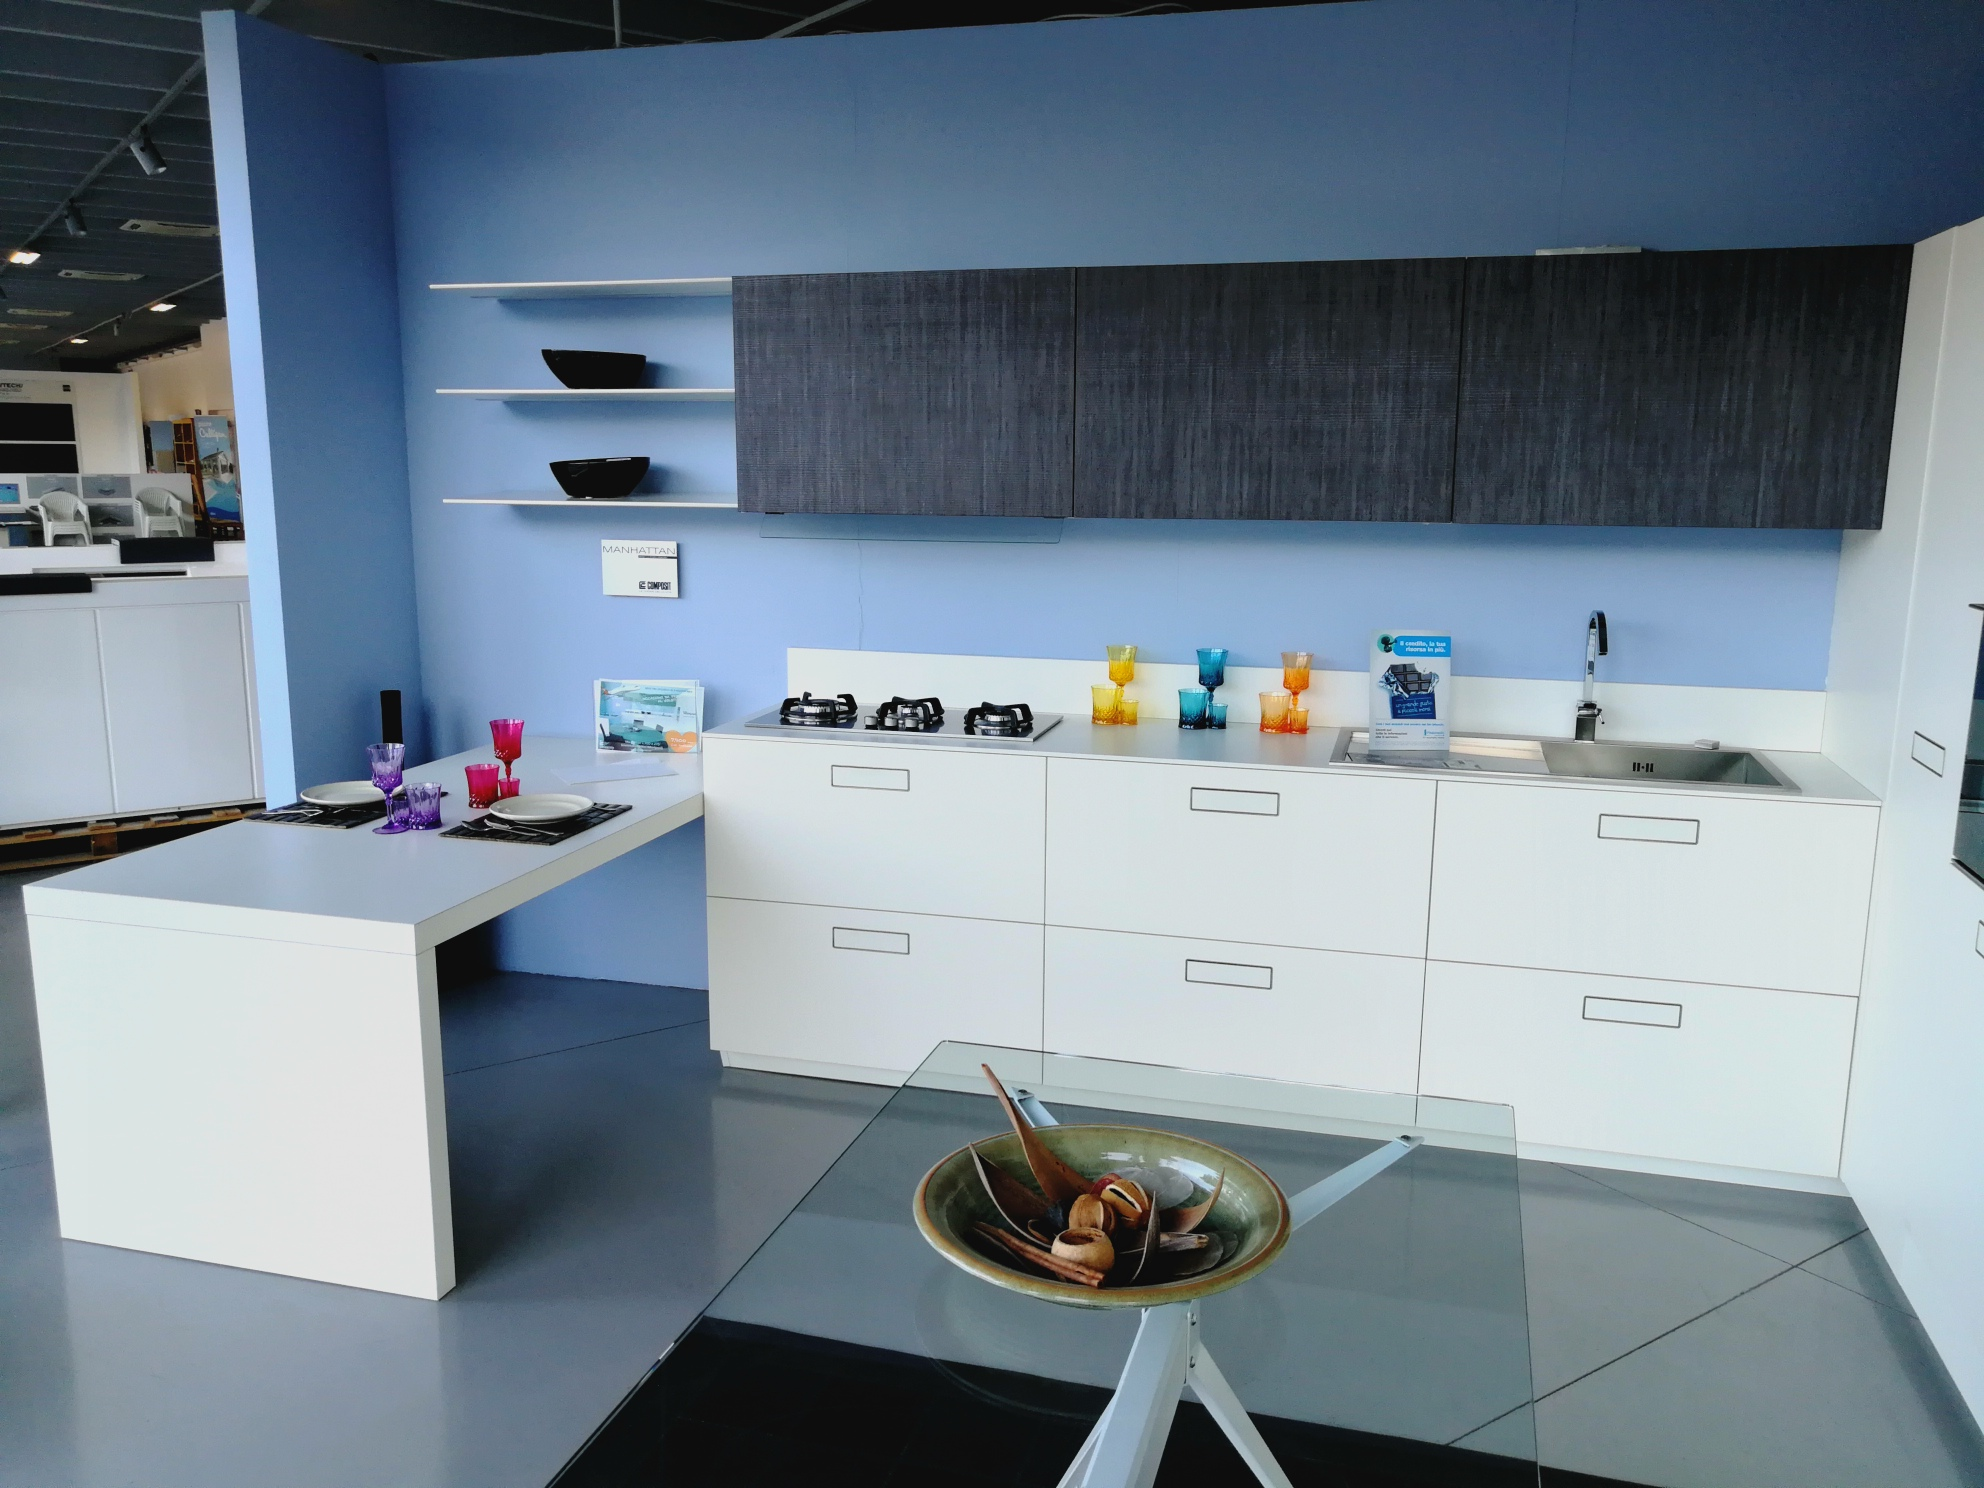 outlet_cucine_idealceramiche19